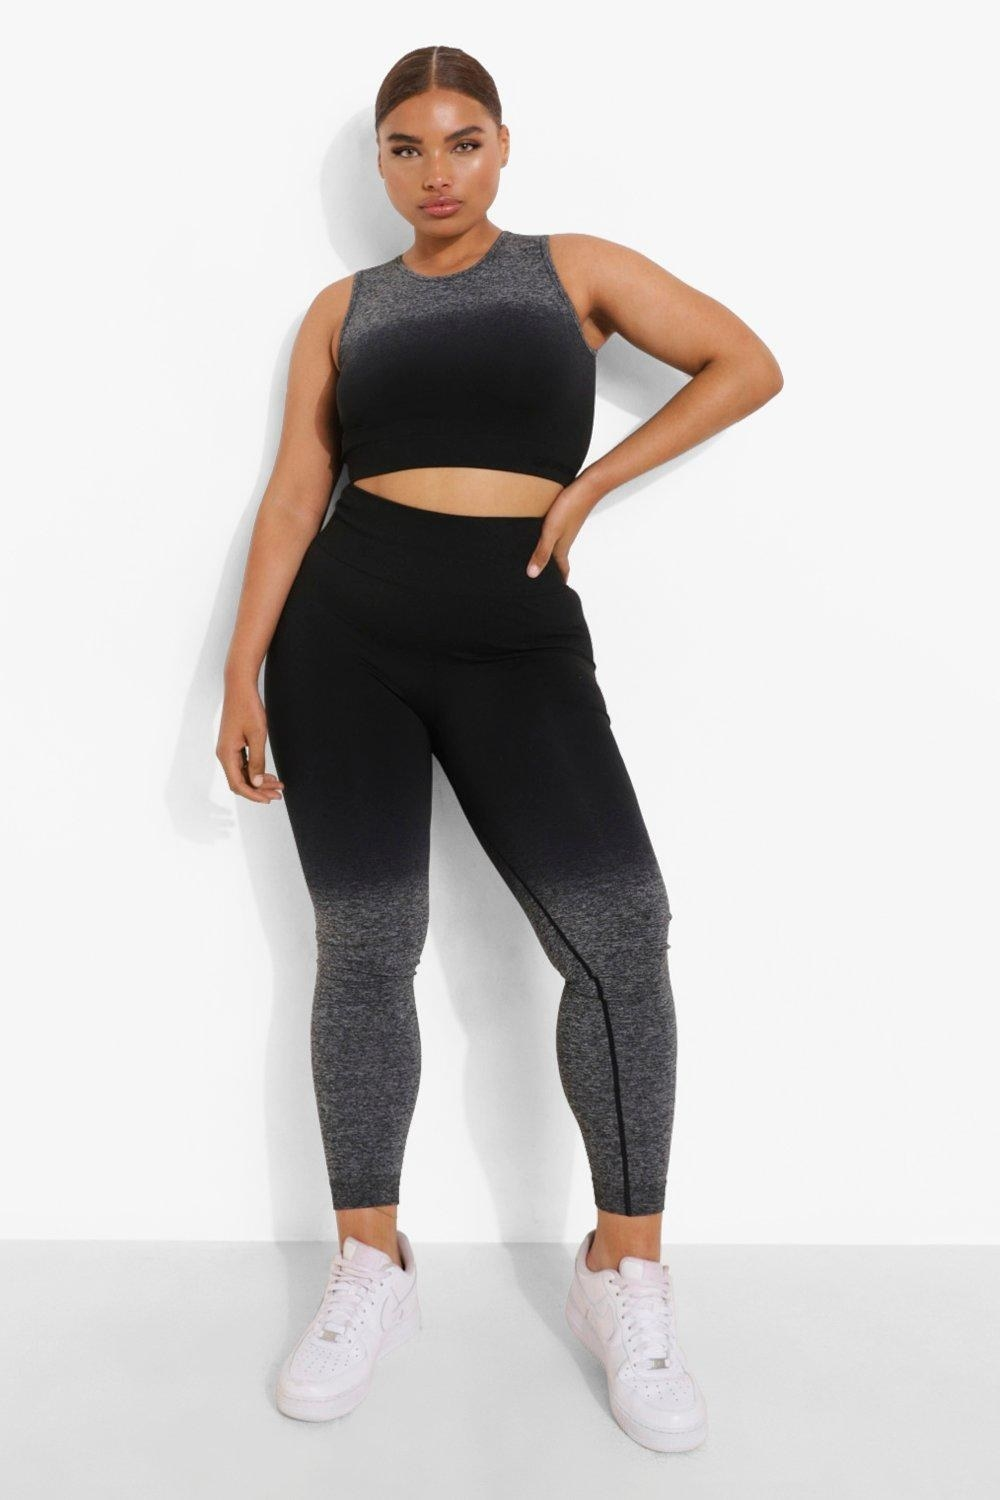 a model wearing the seamless leggings with a matching top